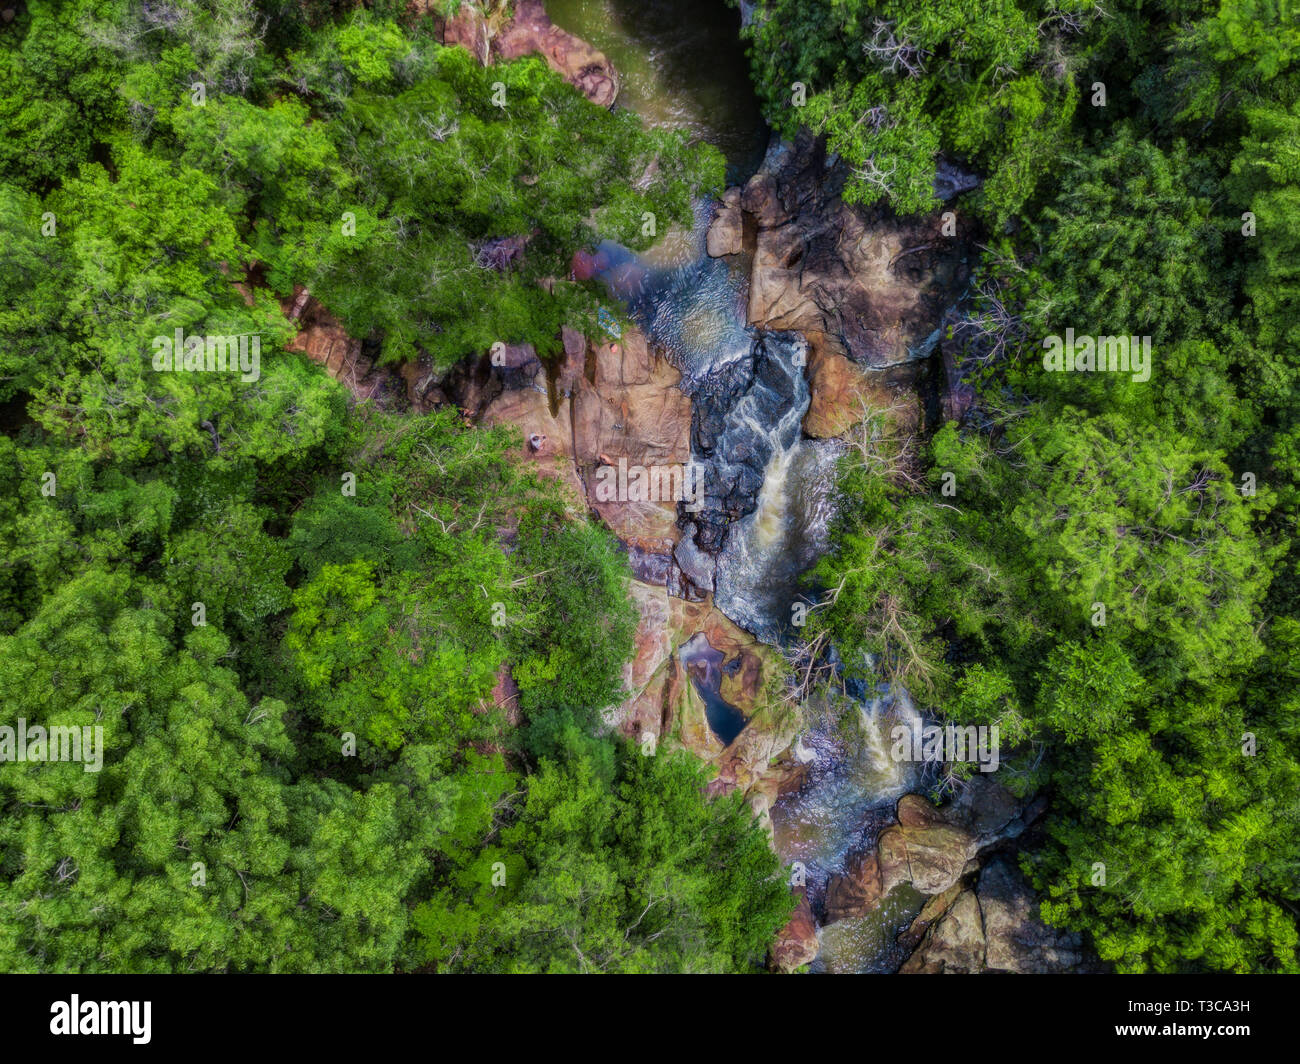 Bird's eye view of the waterfall 'Salto Pai' in the Colonia Independencia in Paraguay. - Stock Image